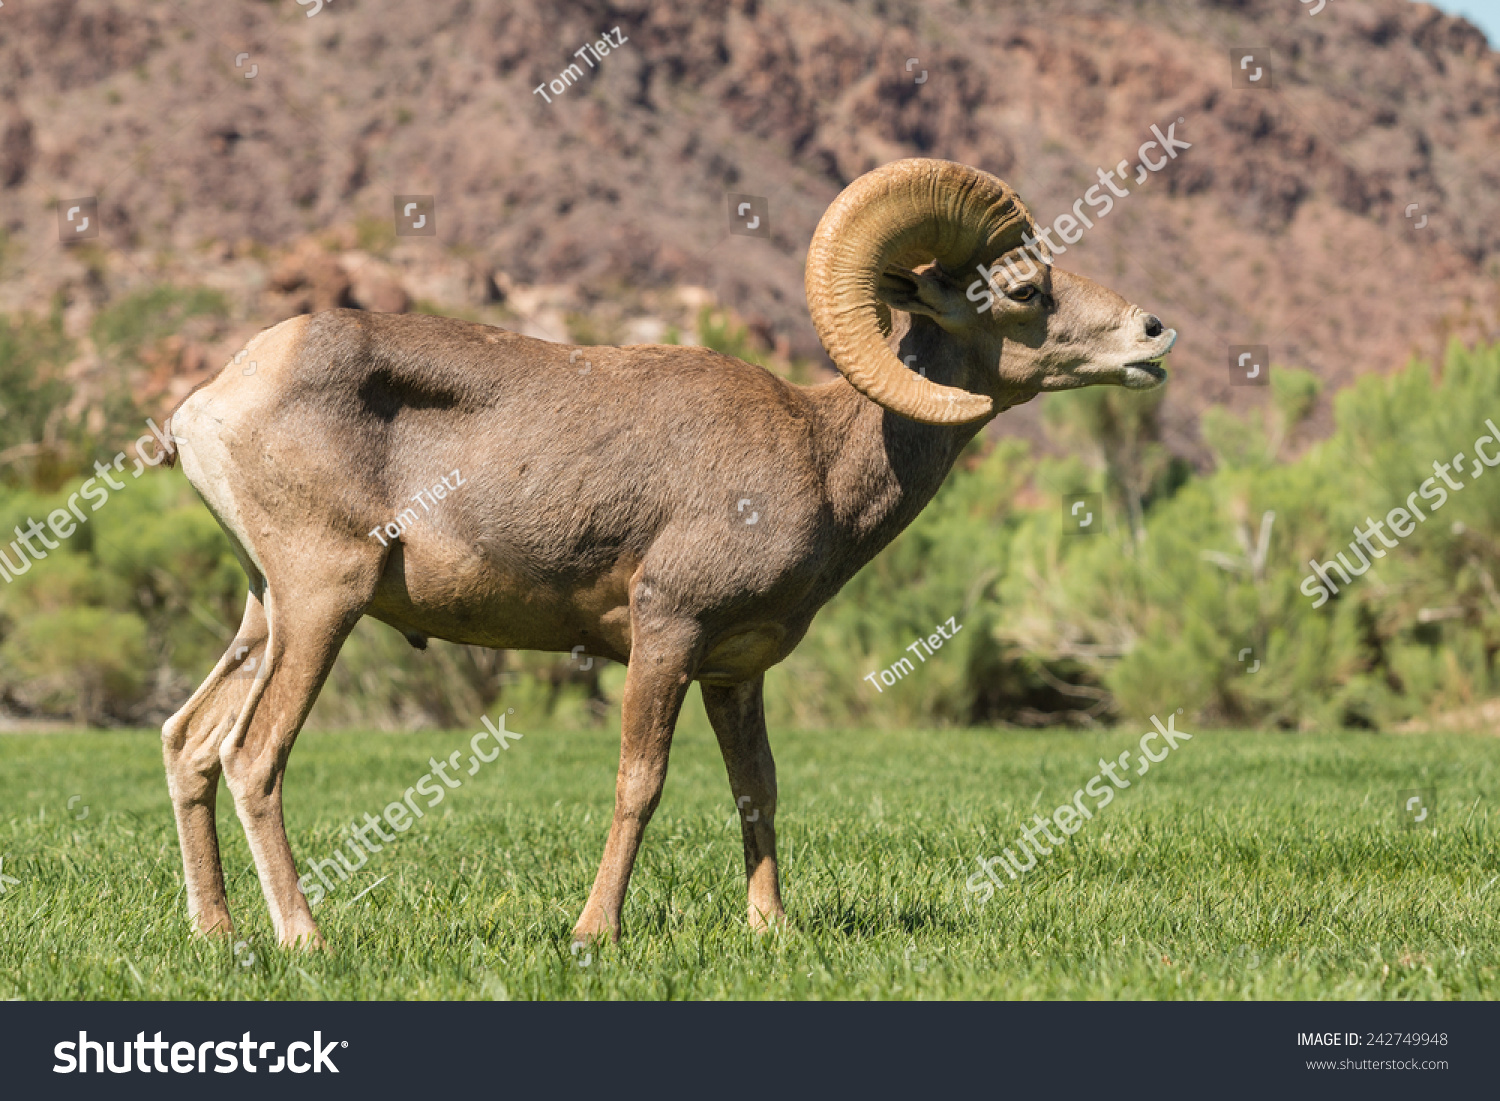 Desert Bighorn Sheep Ram Nevada Animals Wildlife Stock Image 242749948